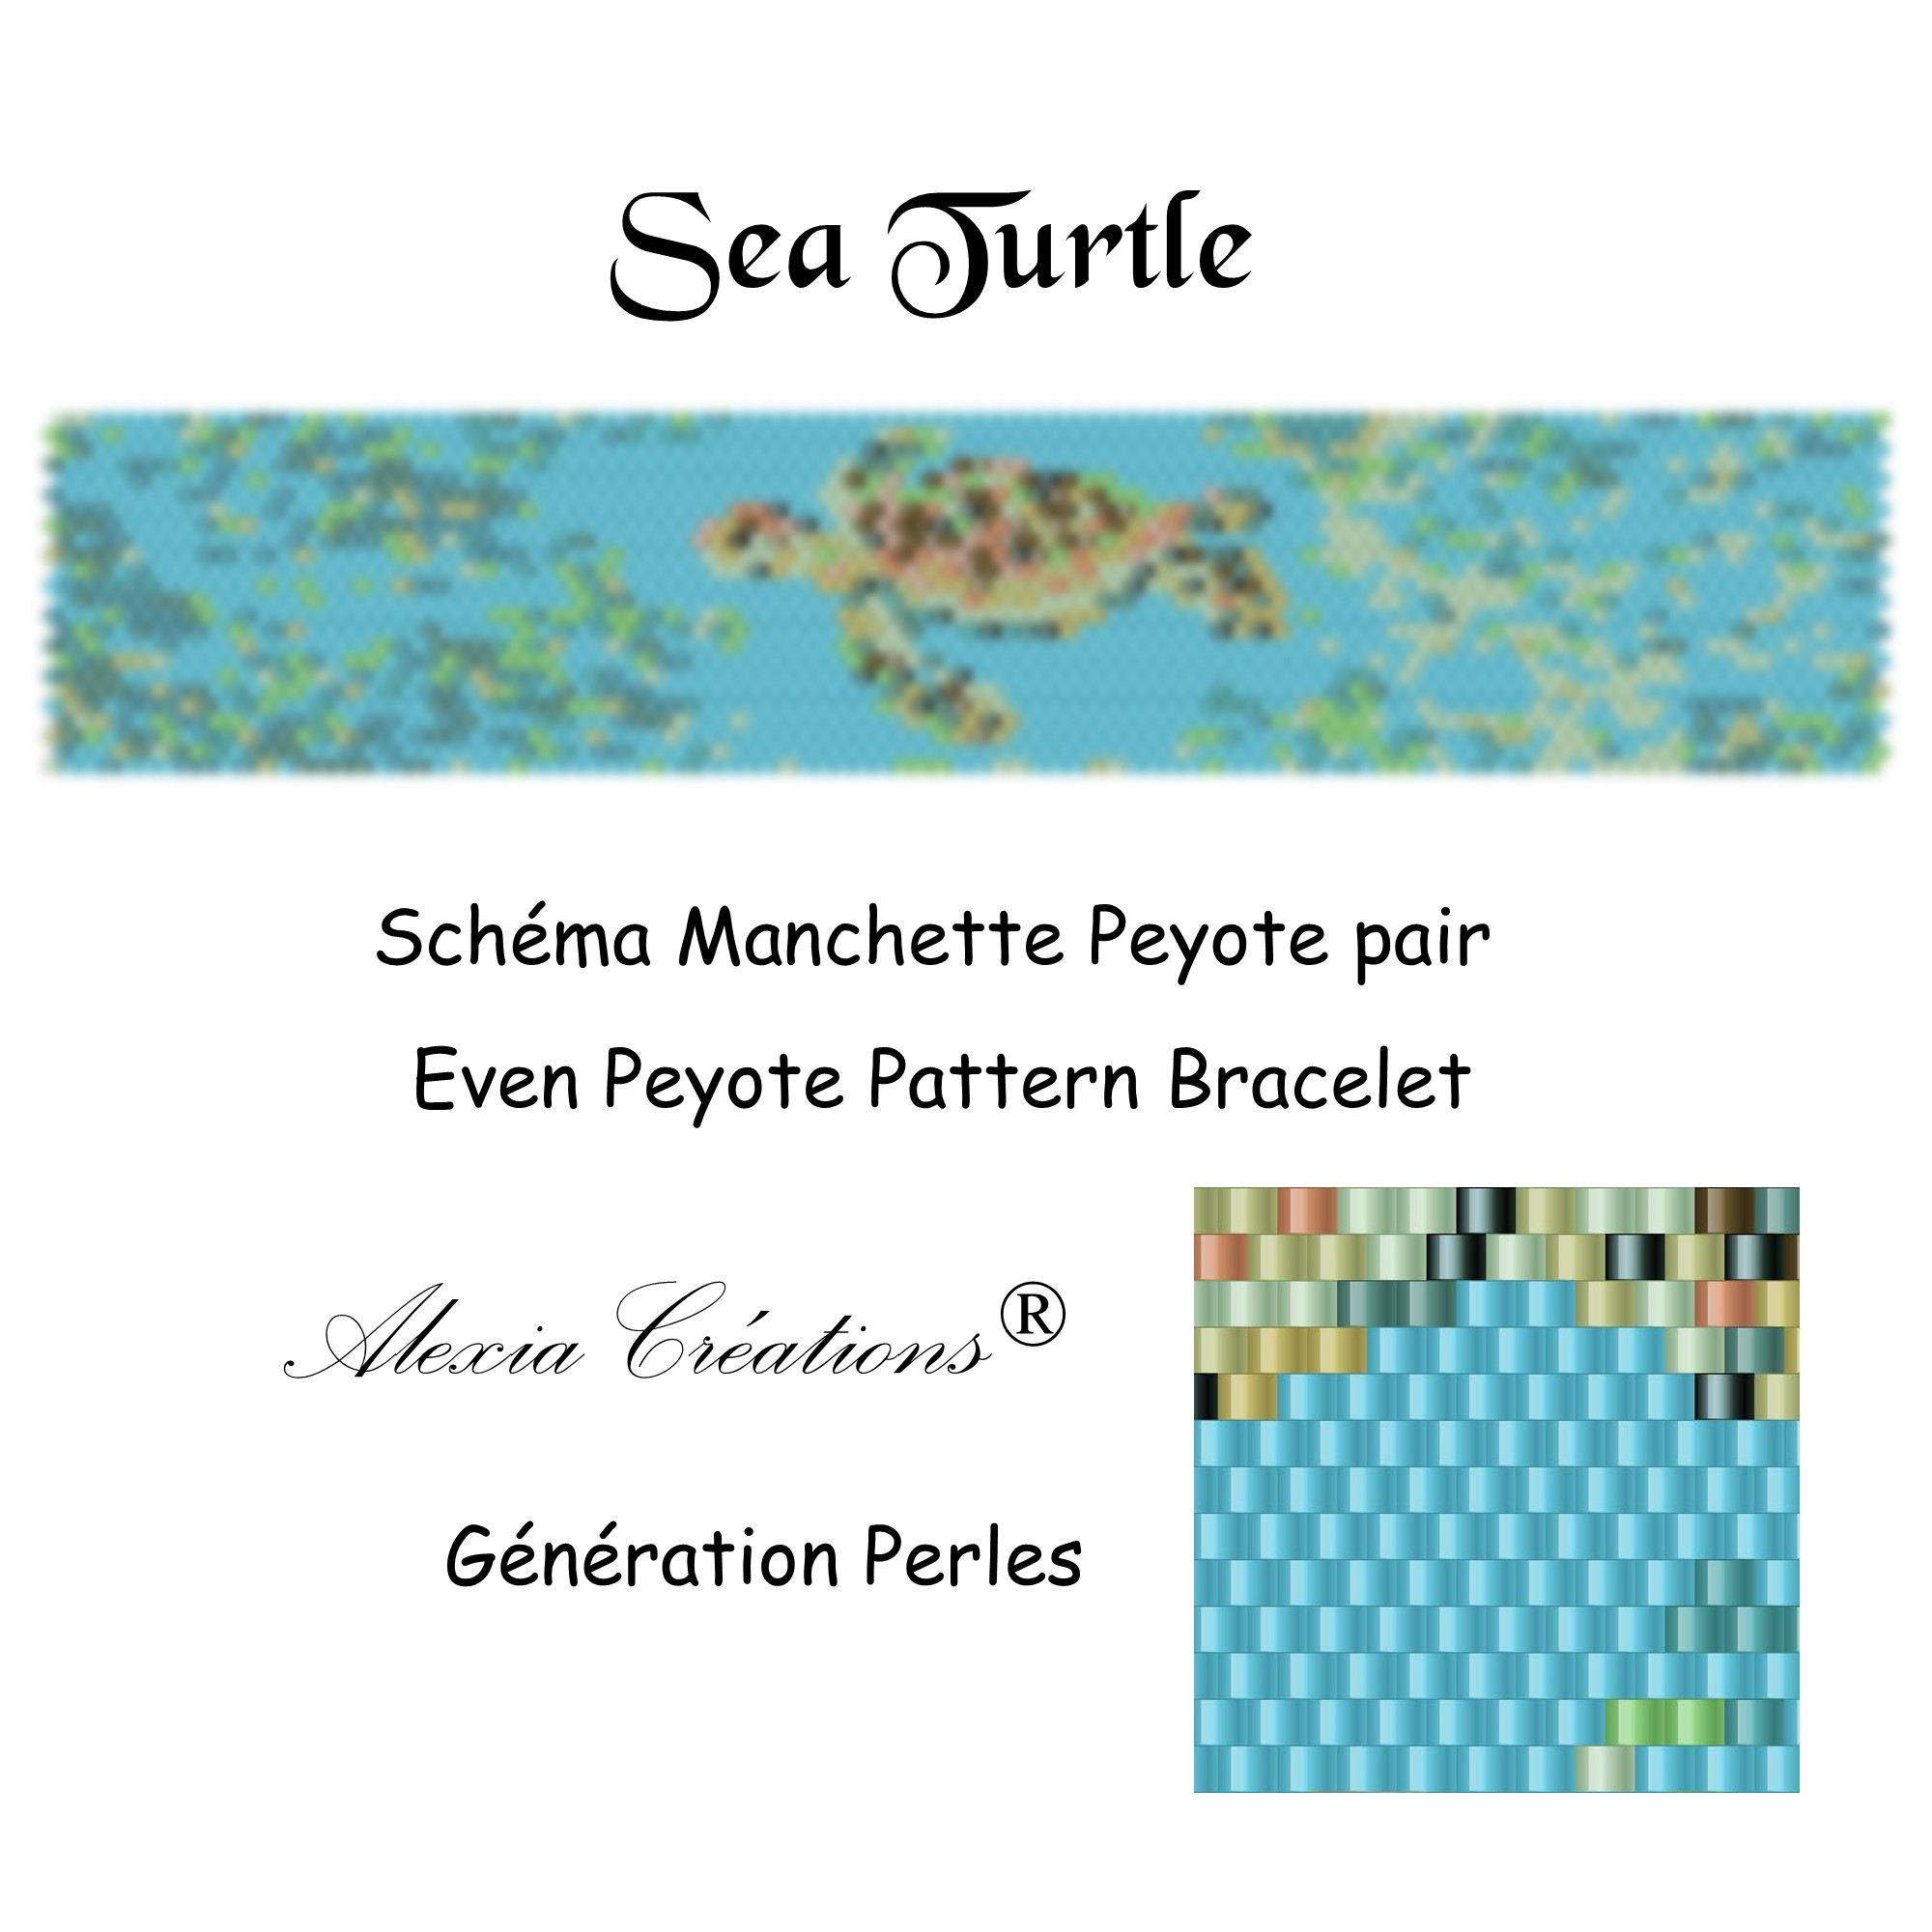 Manchette peyote pair Sea Turtle